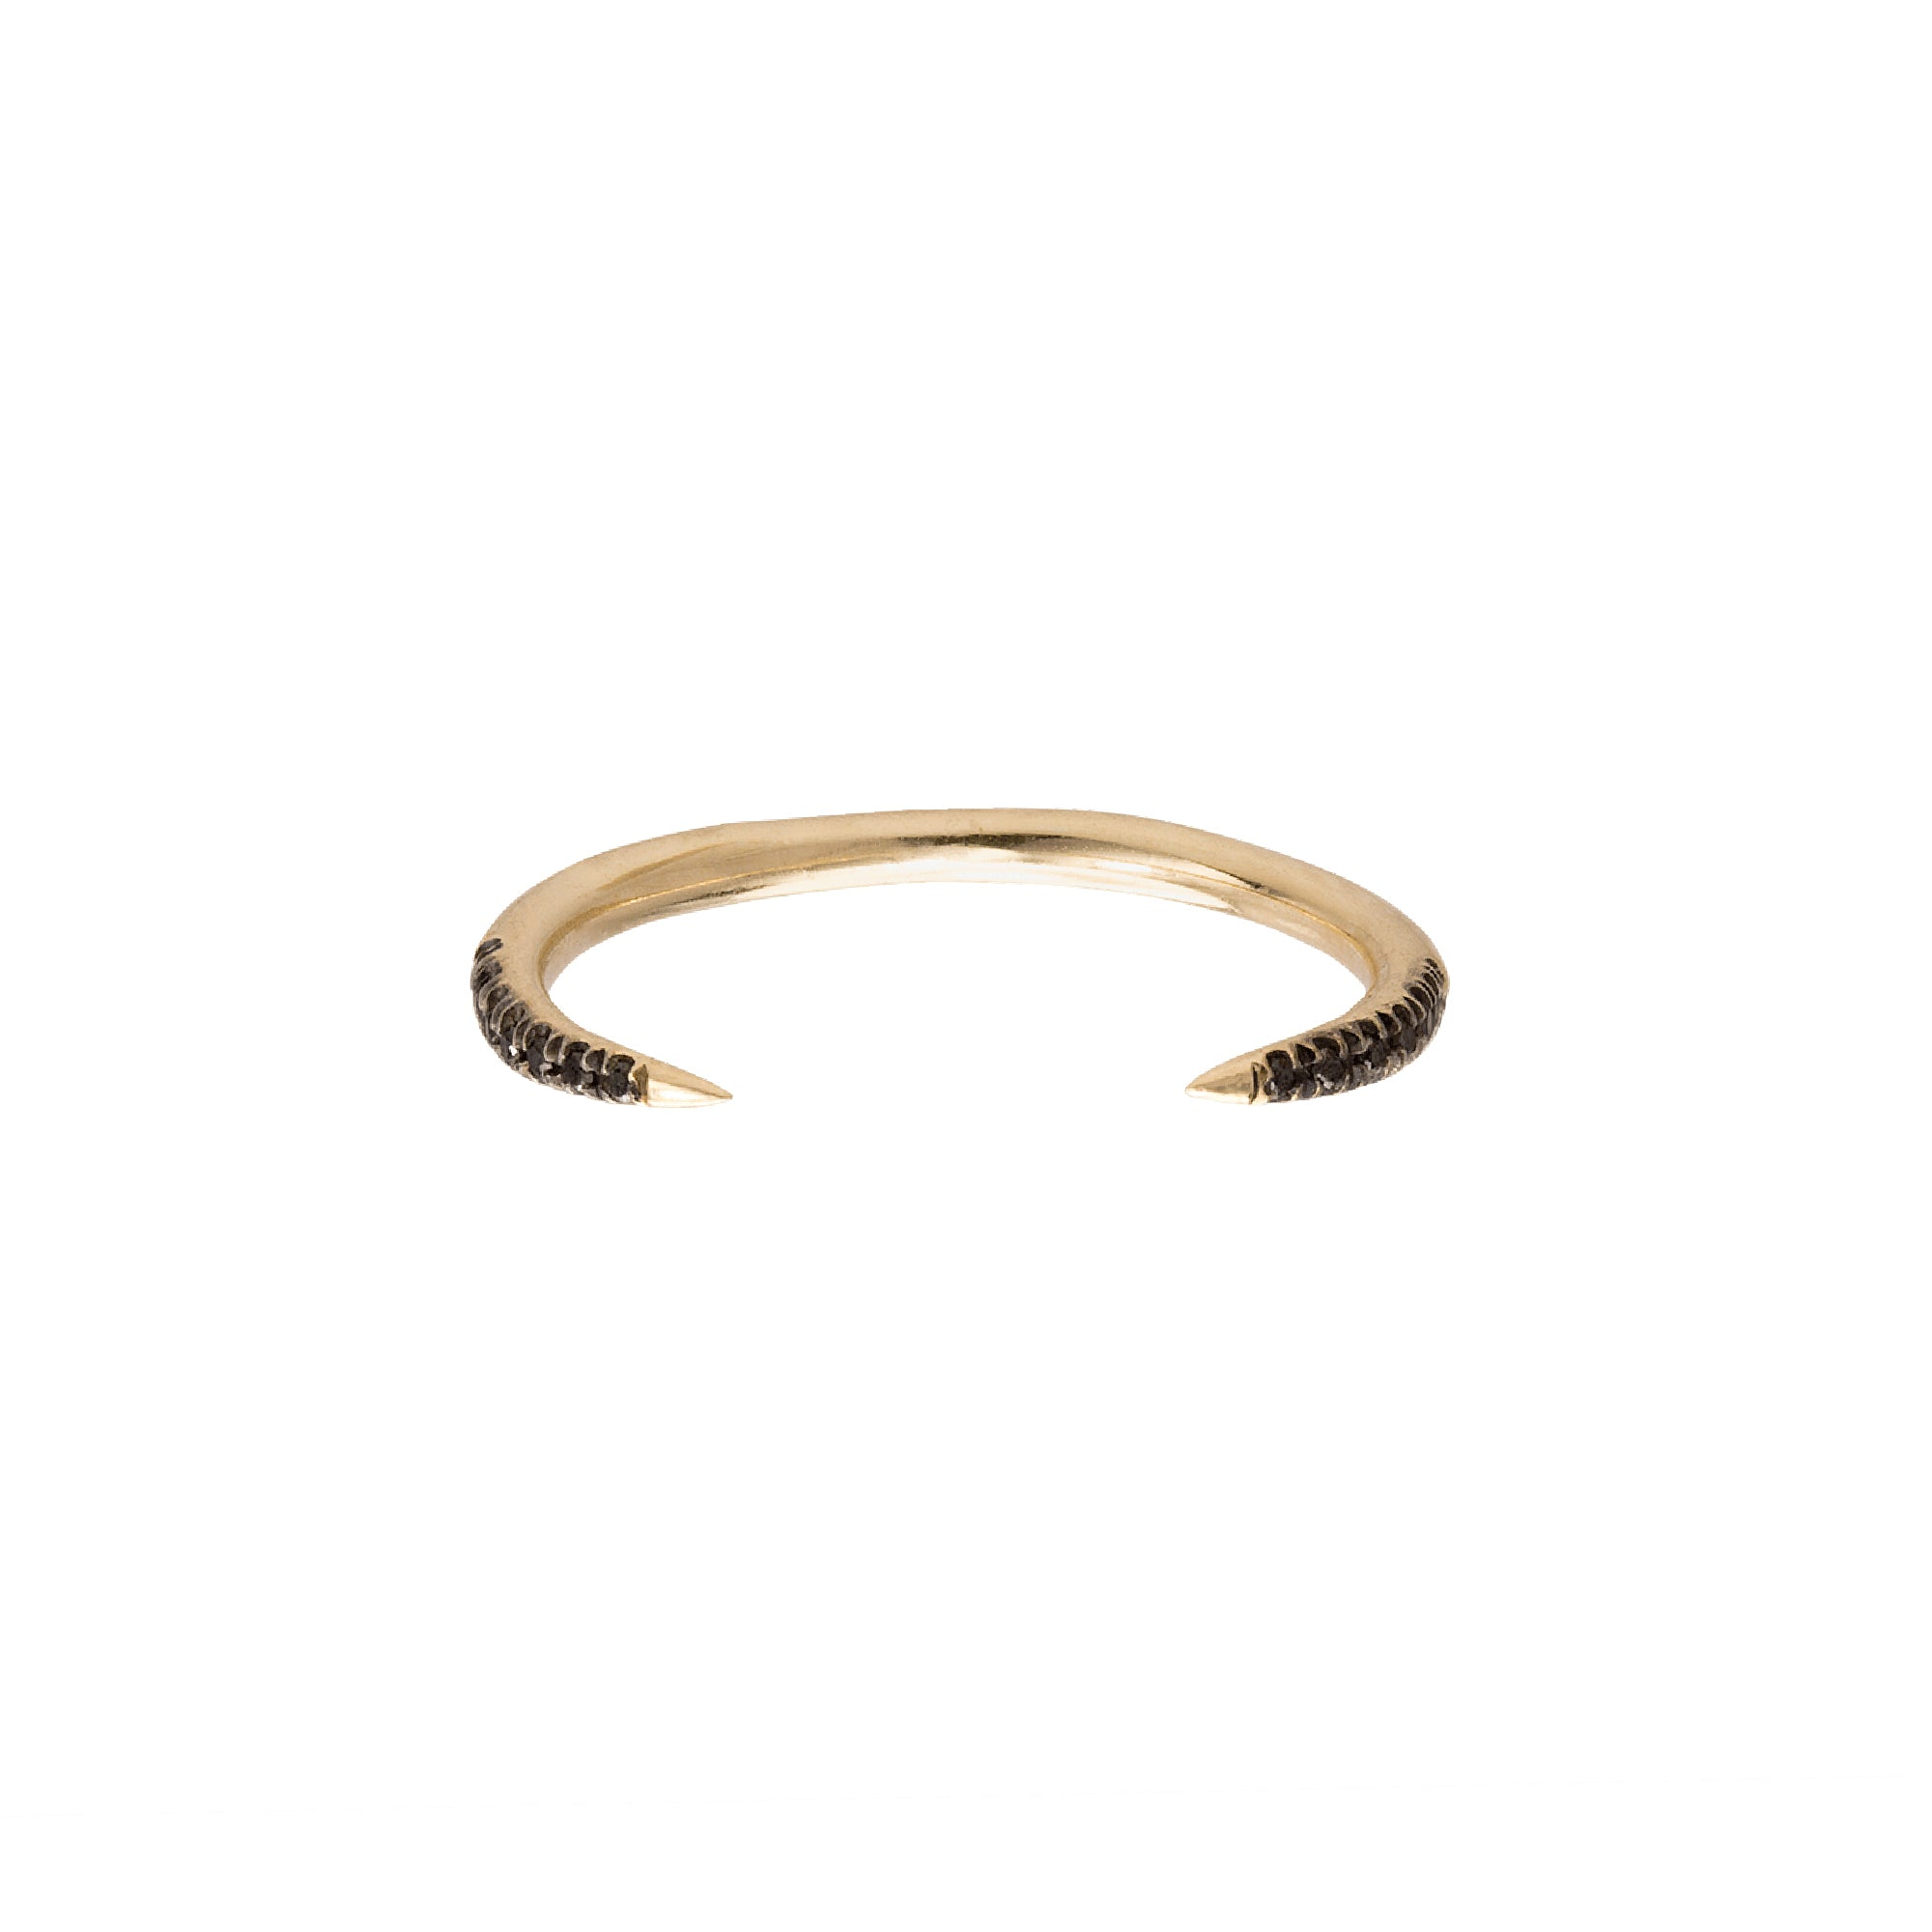 gold black diamond Micro Pave Open Slice Ring by Wwake for Broken English Jewelry